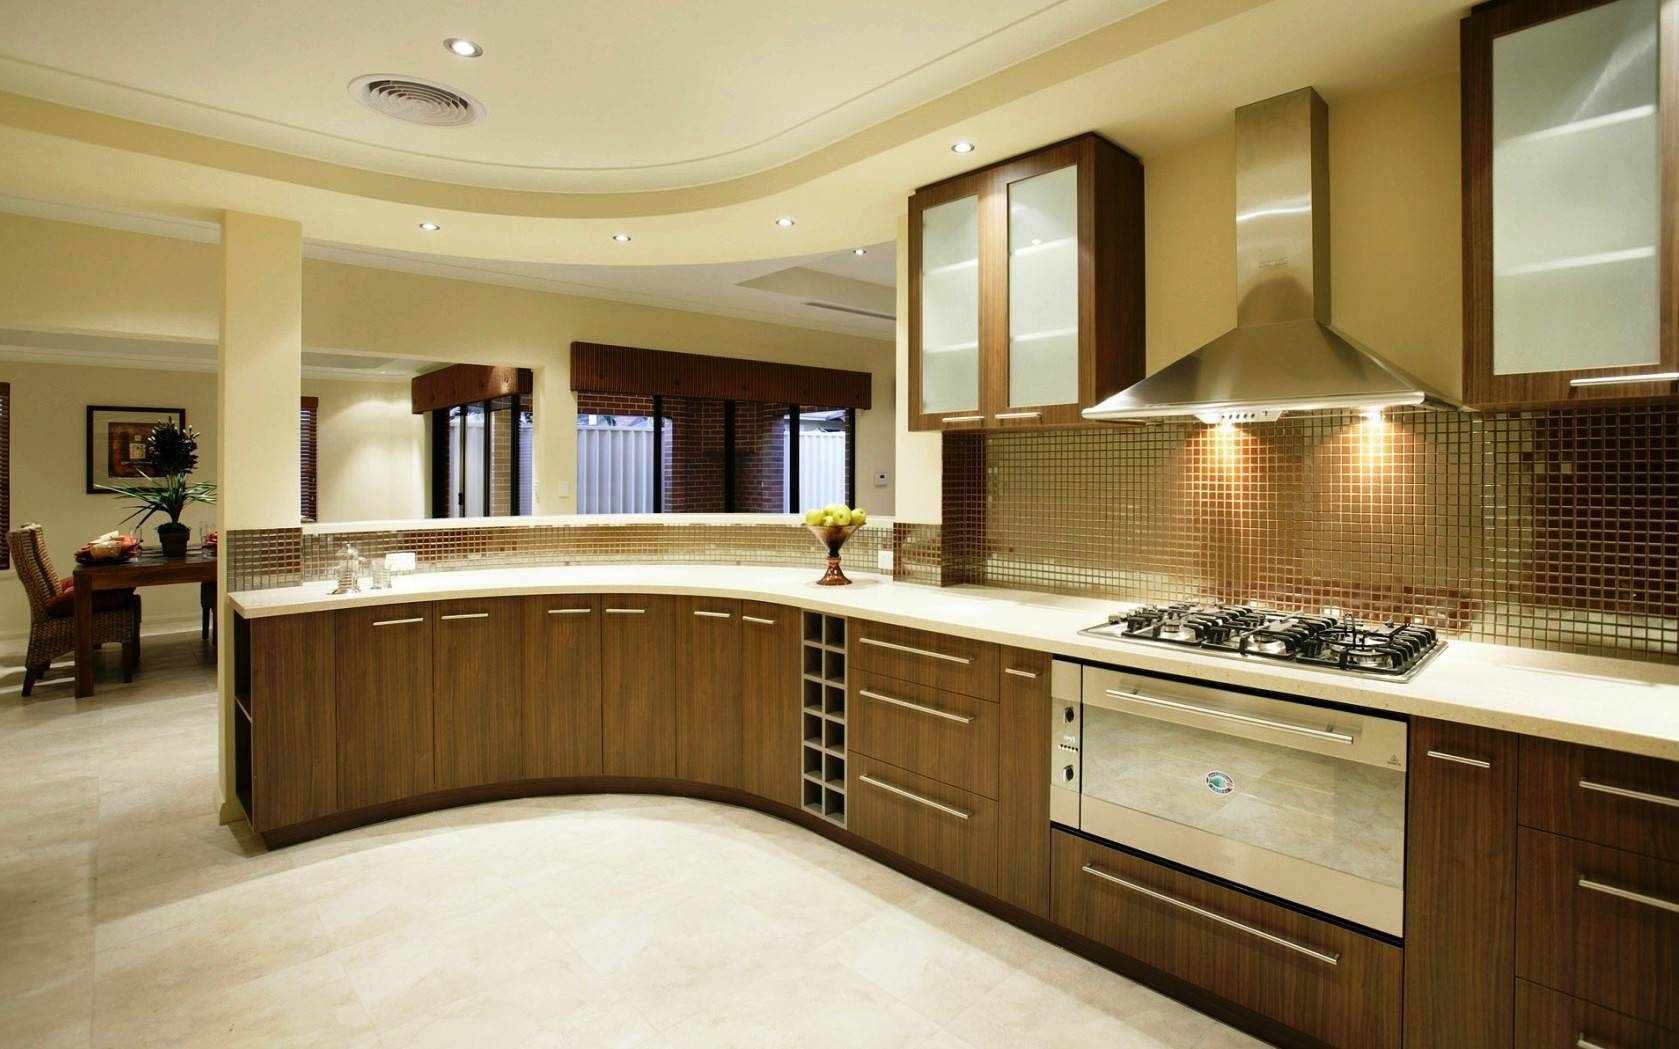 modular kitchen cabinets chennai modular kitchen chennai fantasykitchens in 23594